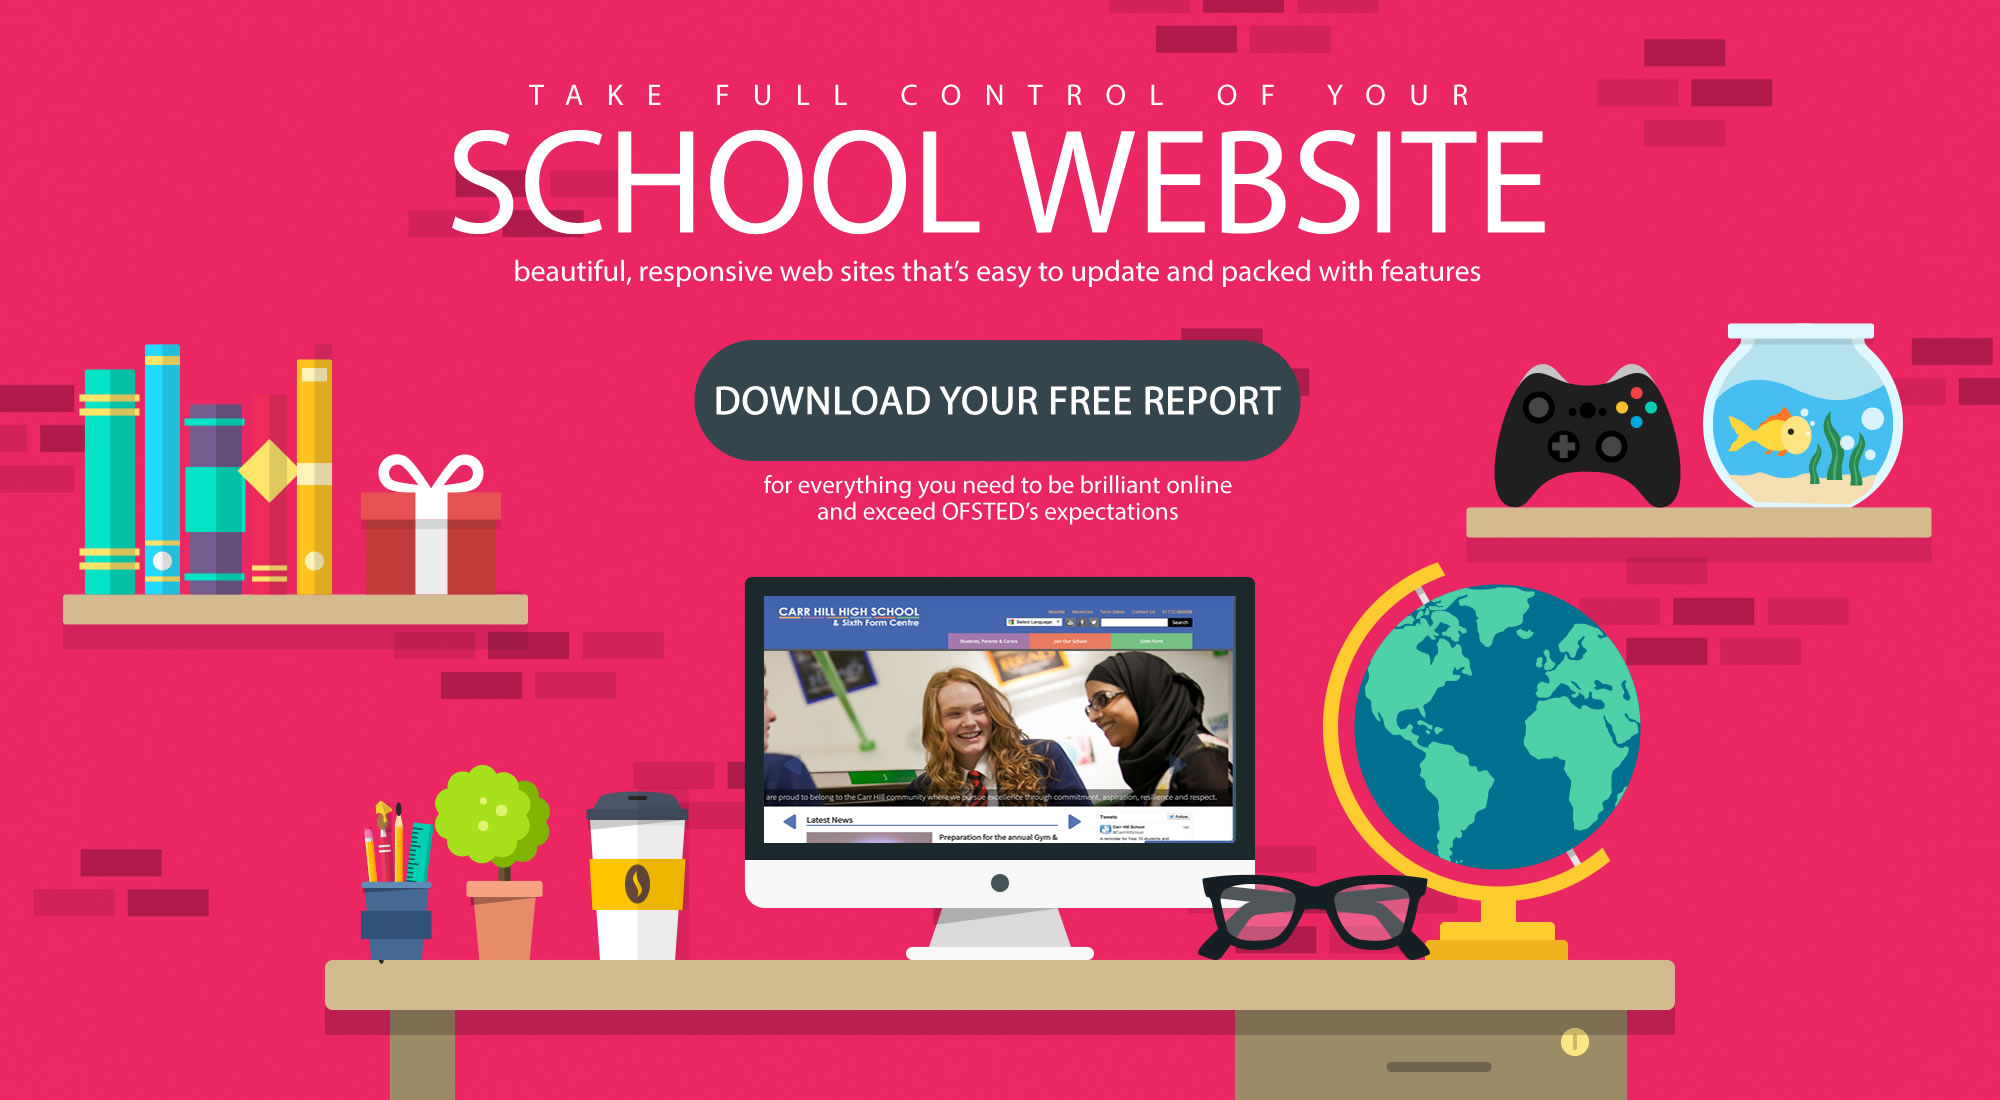 take-full-control-of-your-school-website-31